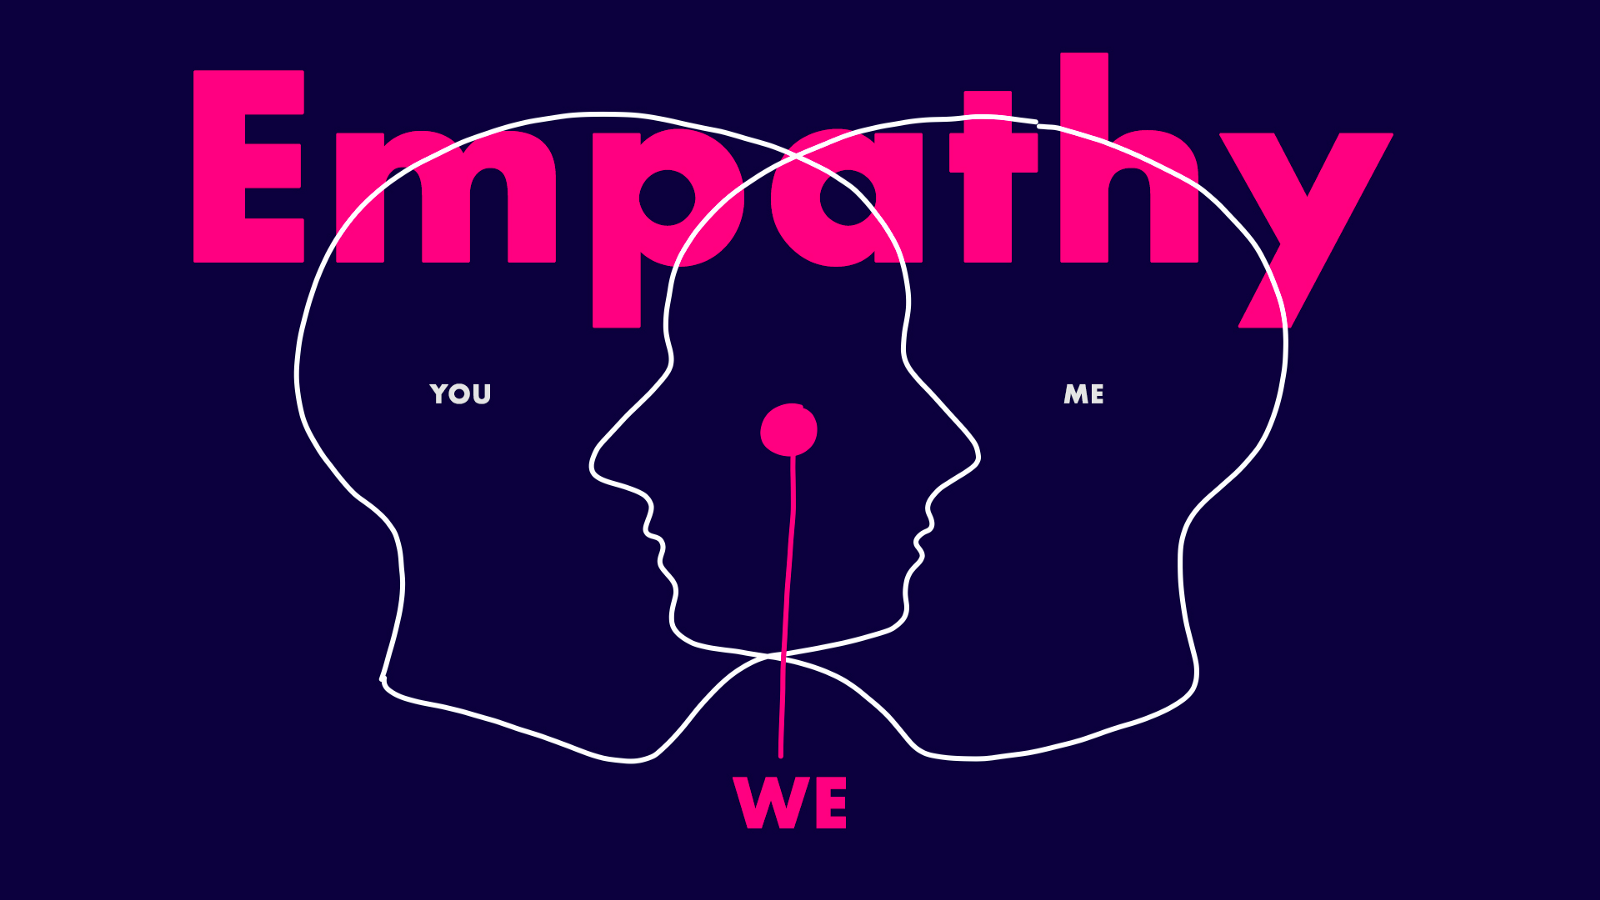 Empathy In Crisis How To Move Forward After The Kavanaugh Hearings